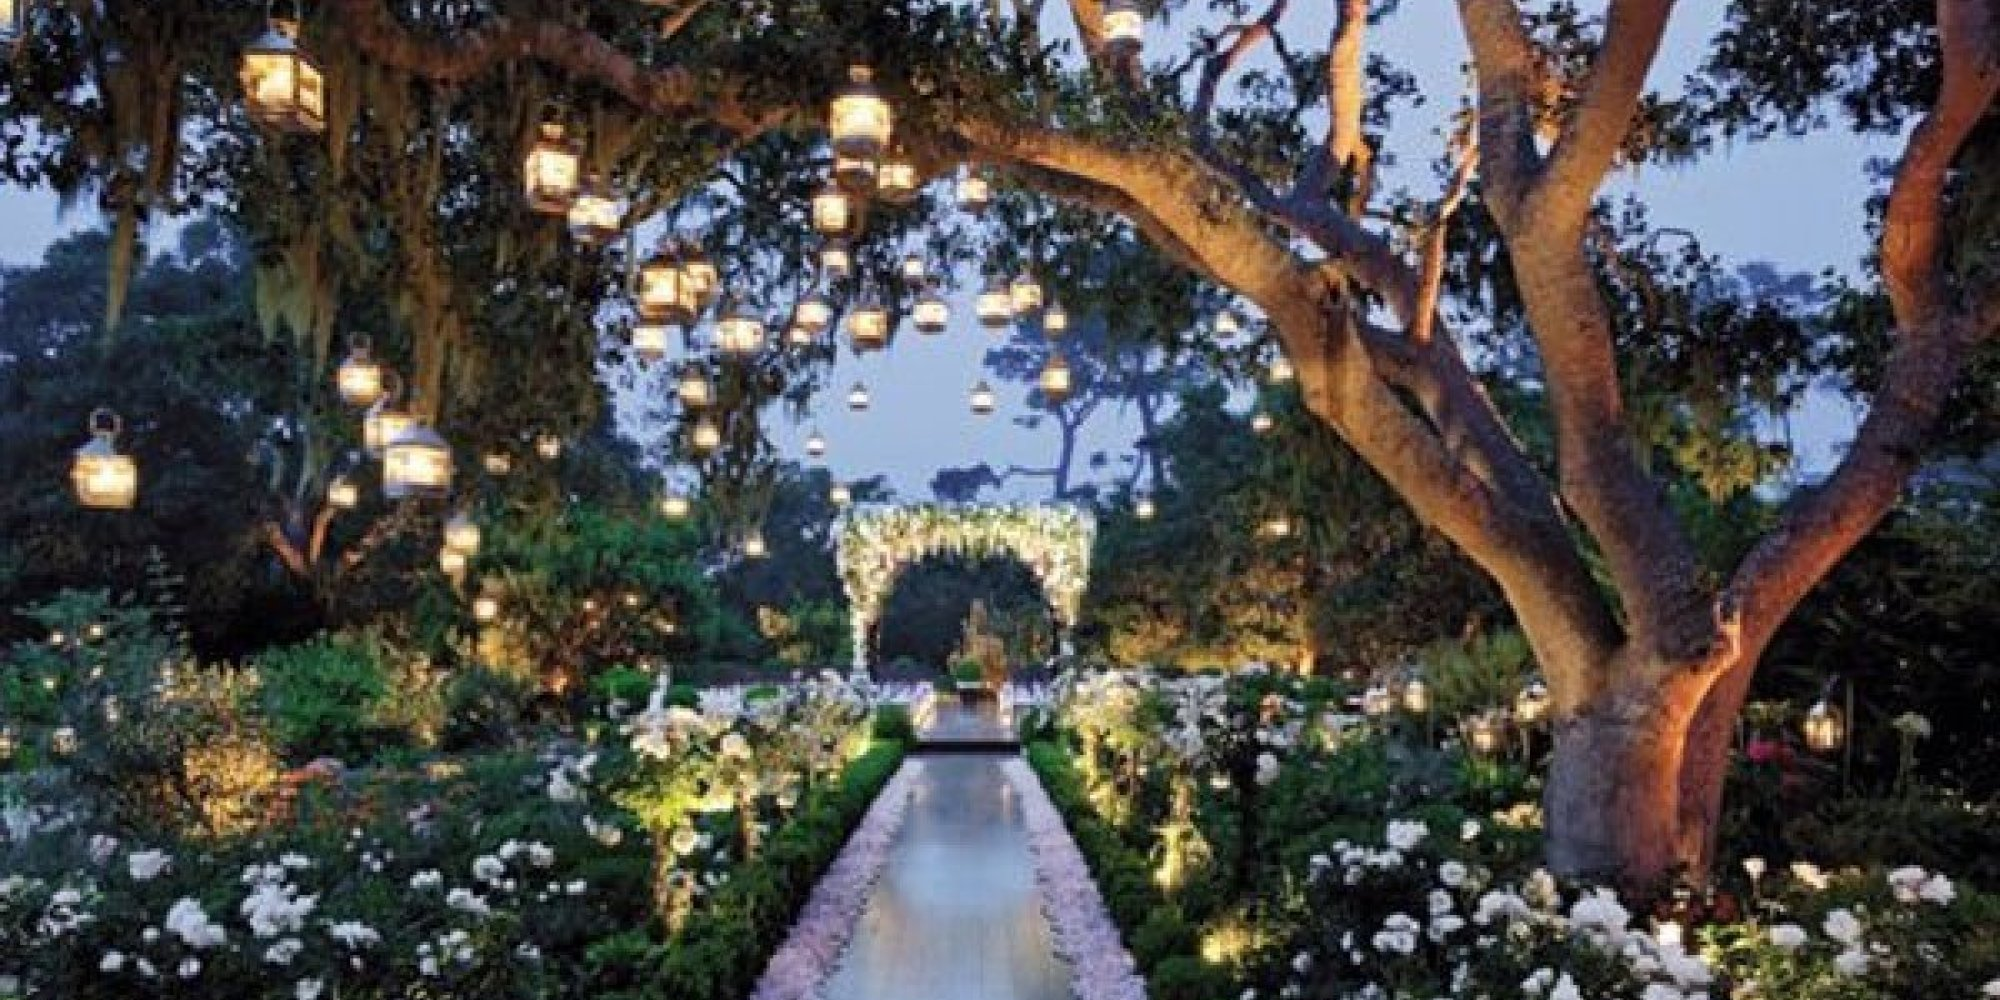 50 Romantic Wedding Ideas That Are Straight Out Of A Fairy Tale | HuffPost